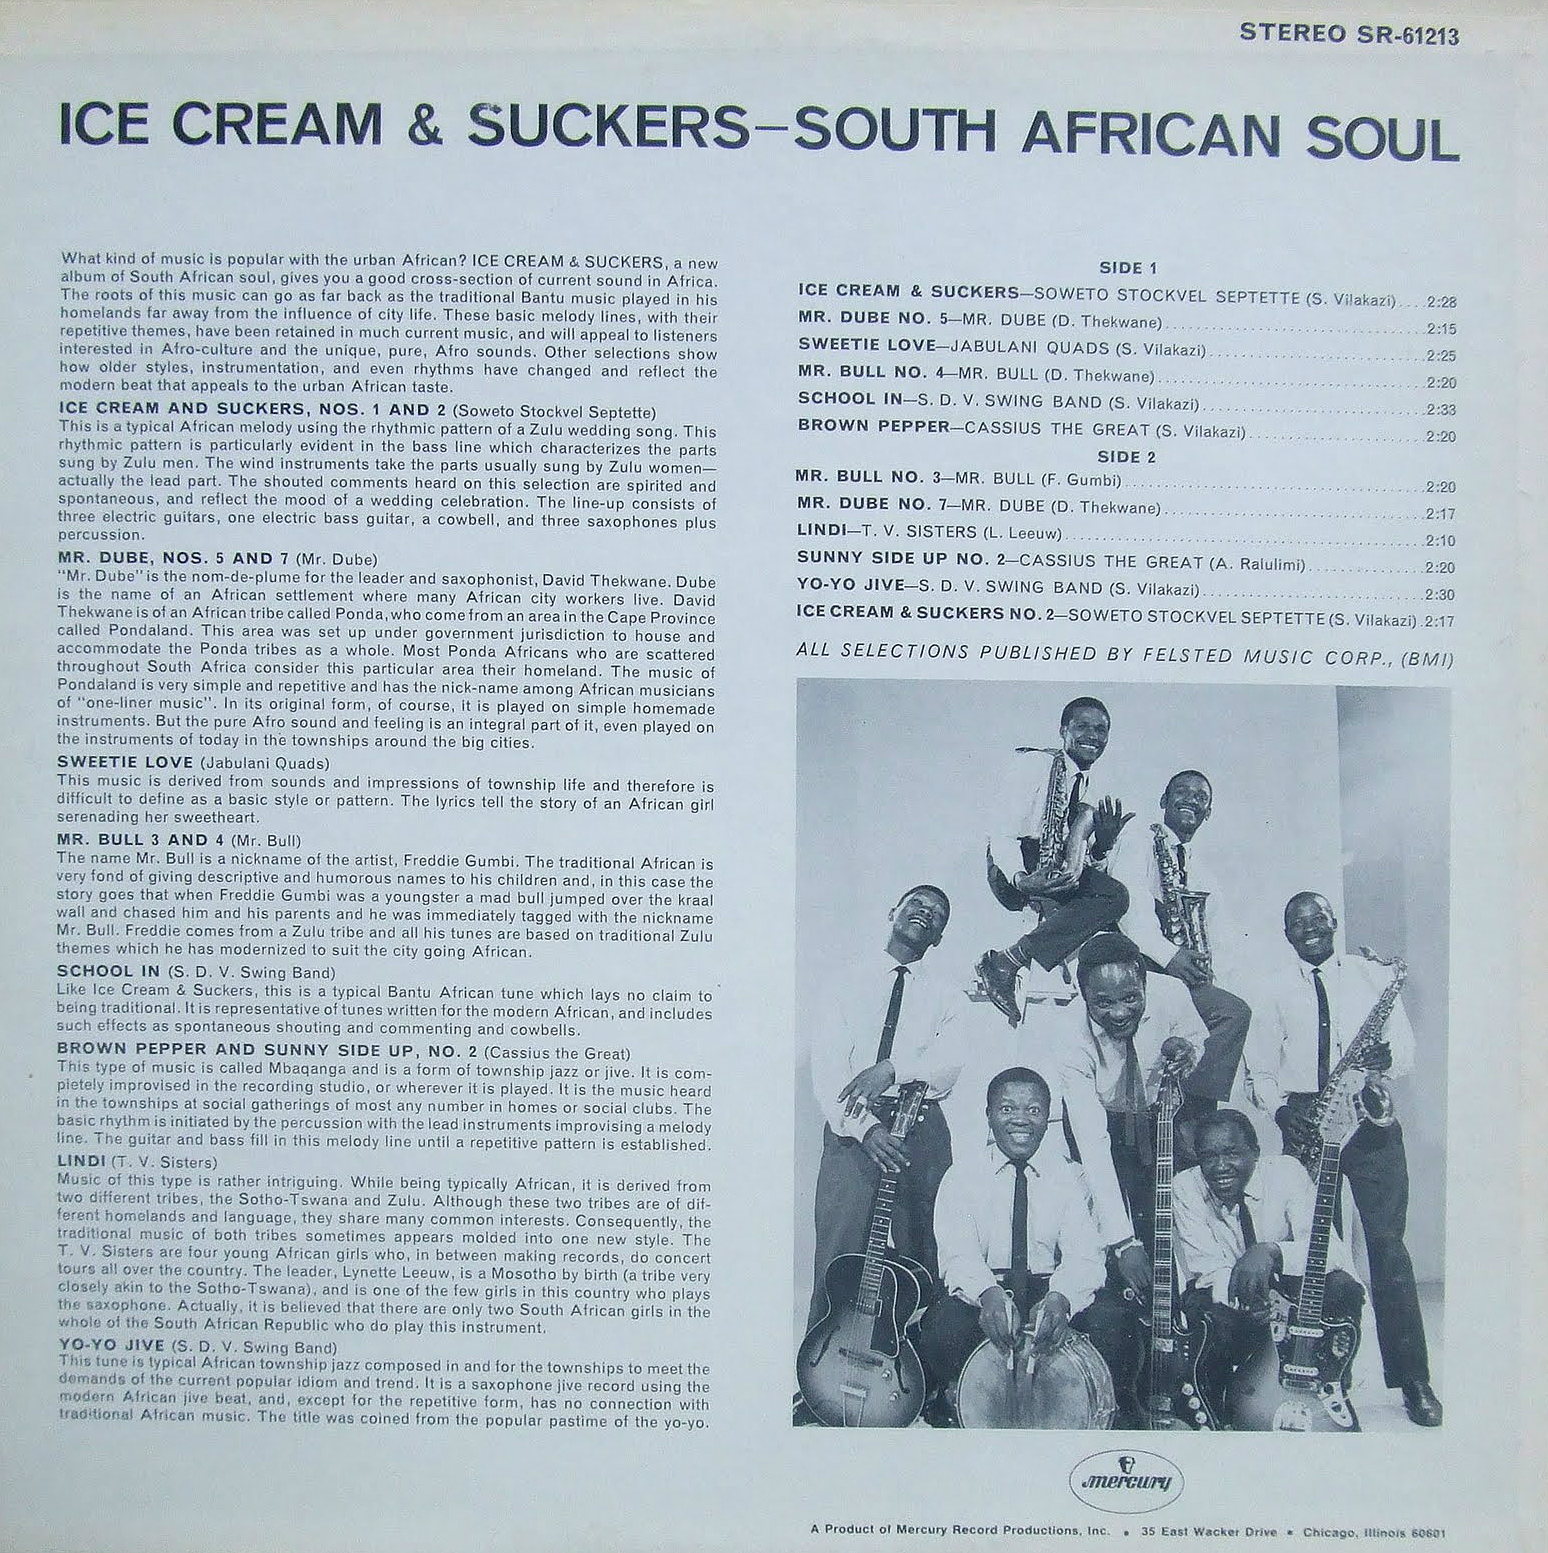 Ice Cream & Suckers - Various Artists Mercury LP-cc